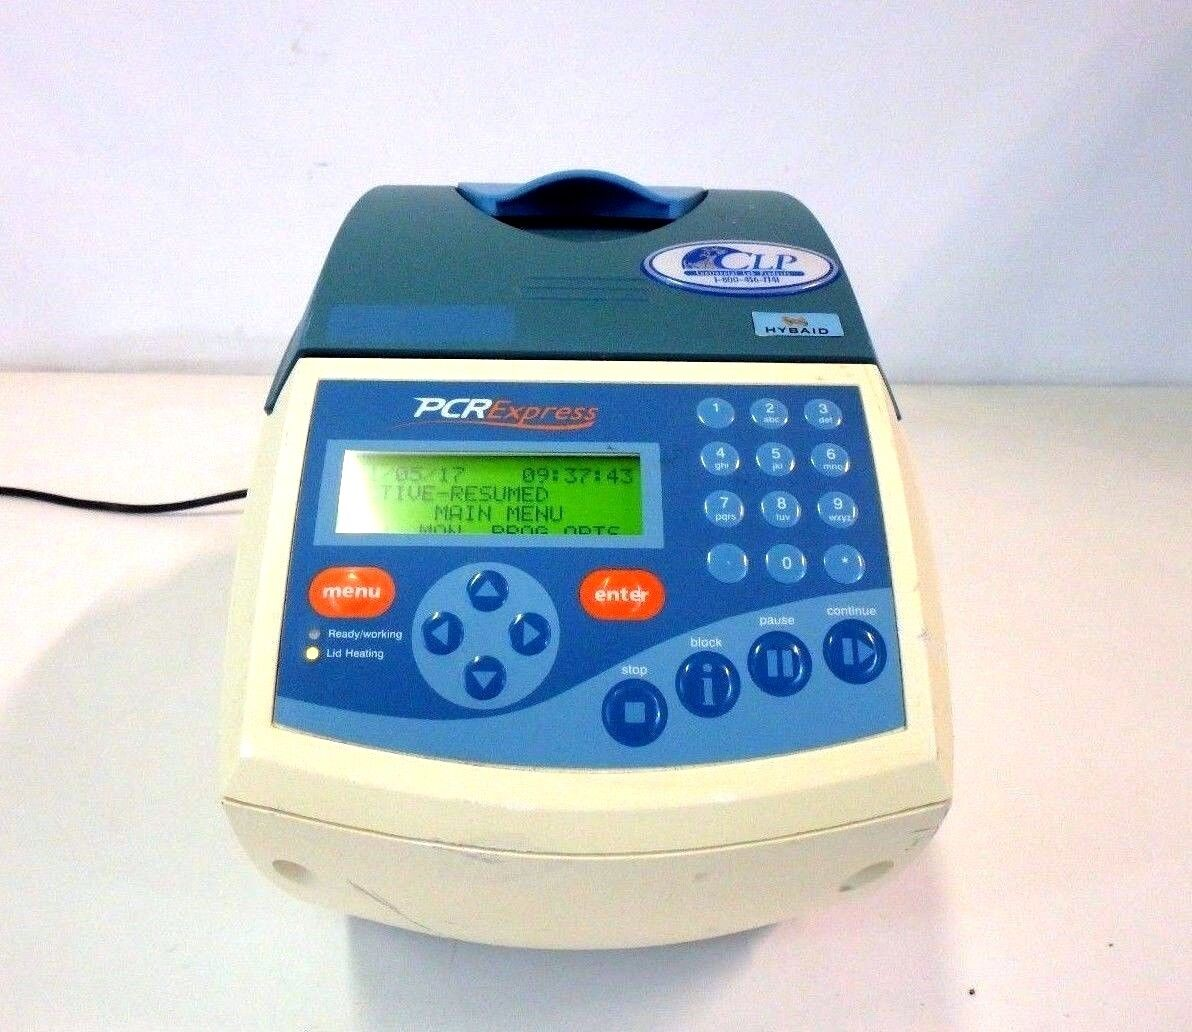 Hybaid PCR Express HBPX110 Thermal Cycler w/ 5 mm 96 Well Block Lab Laboratory